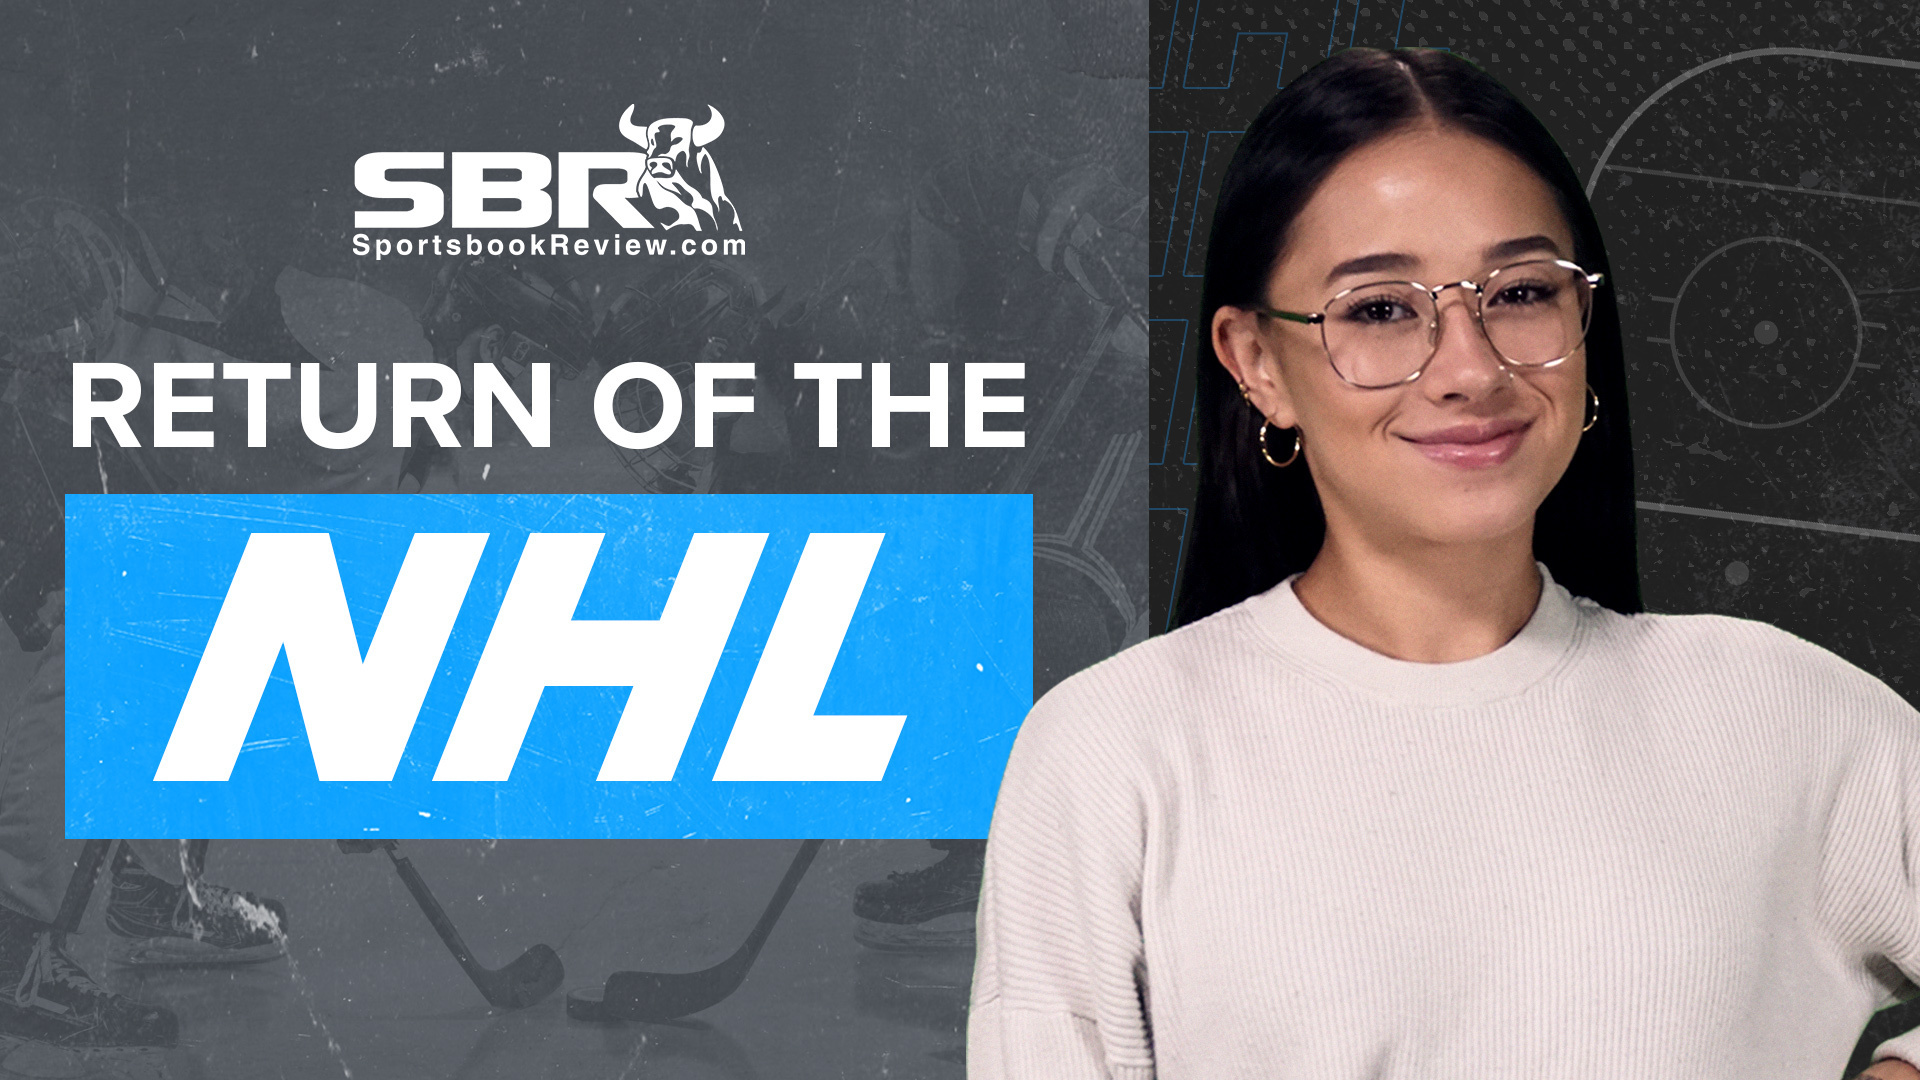 NHL is Back and We Have the Season Prediction!